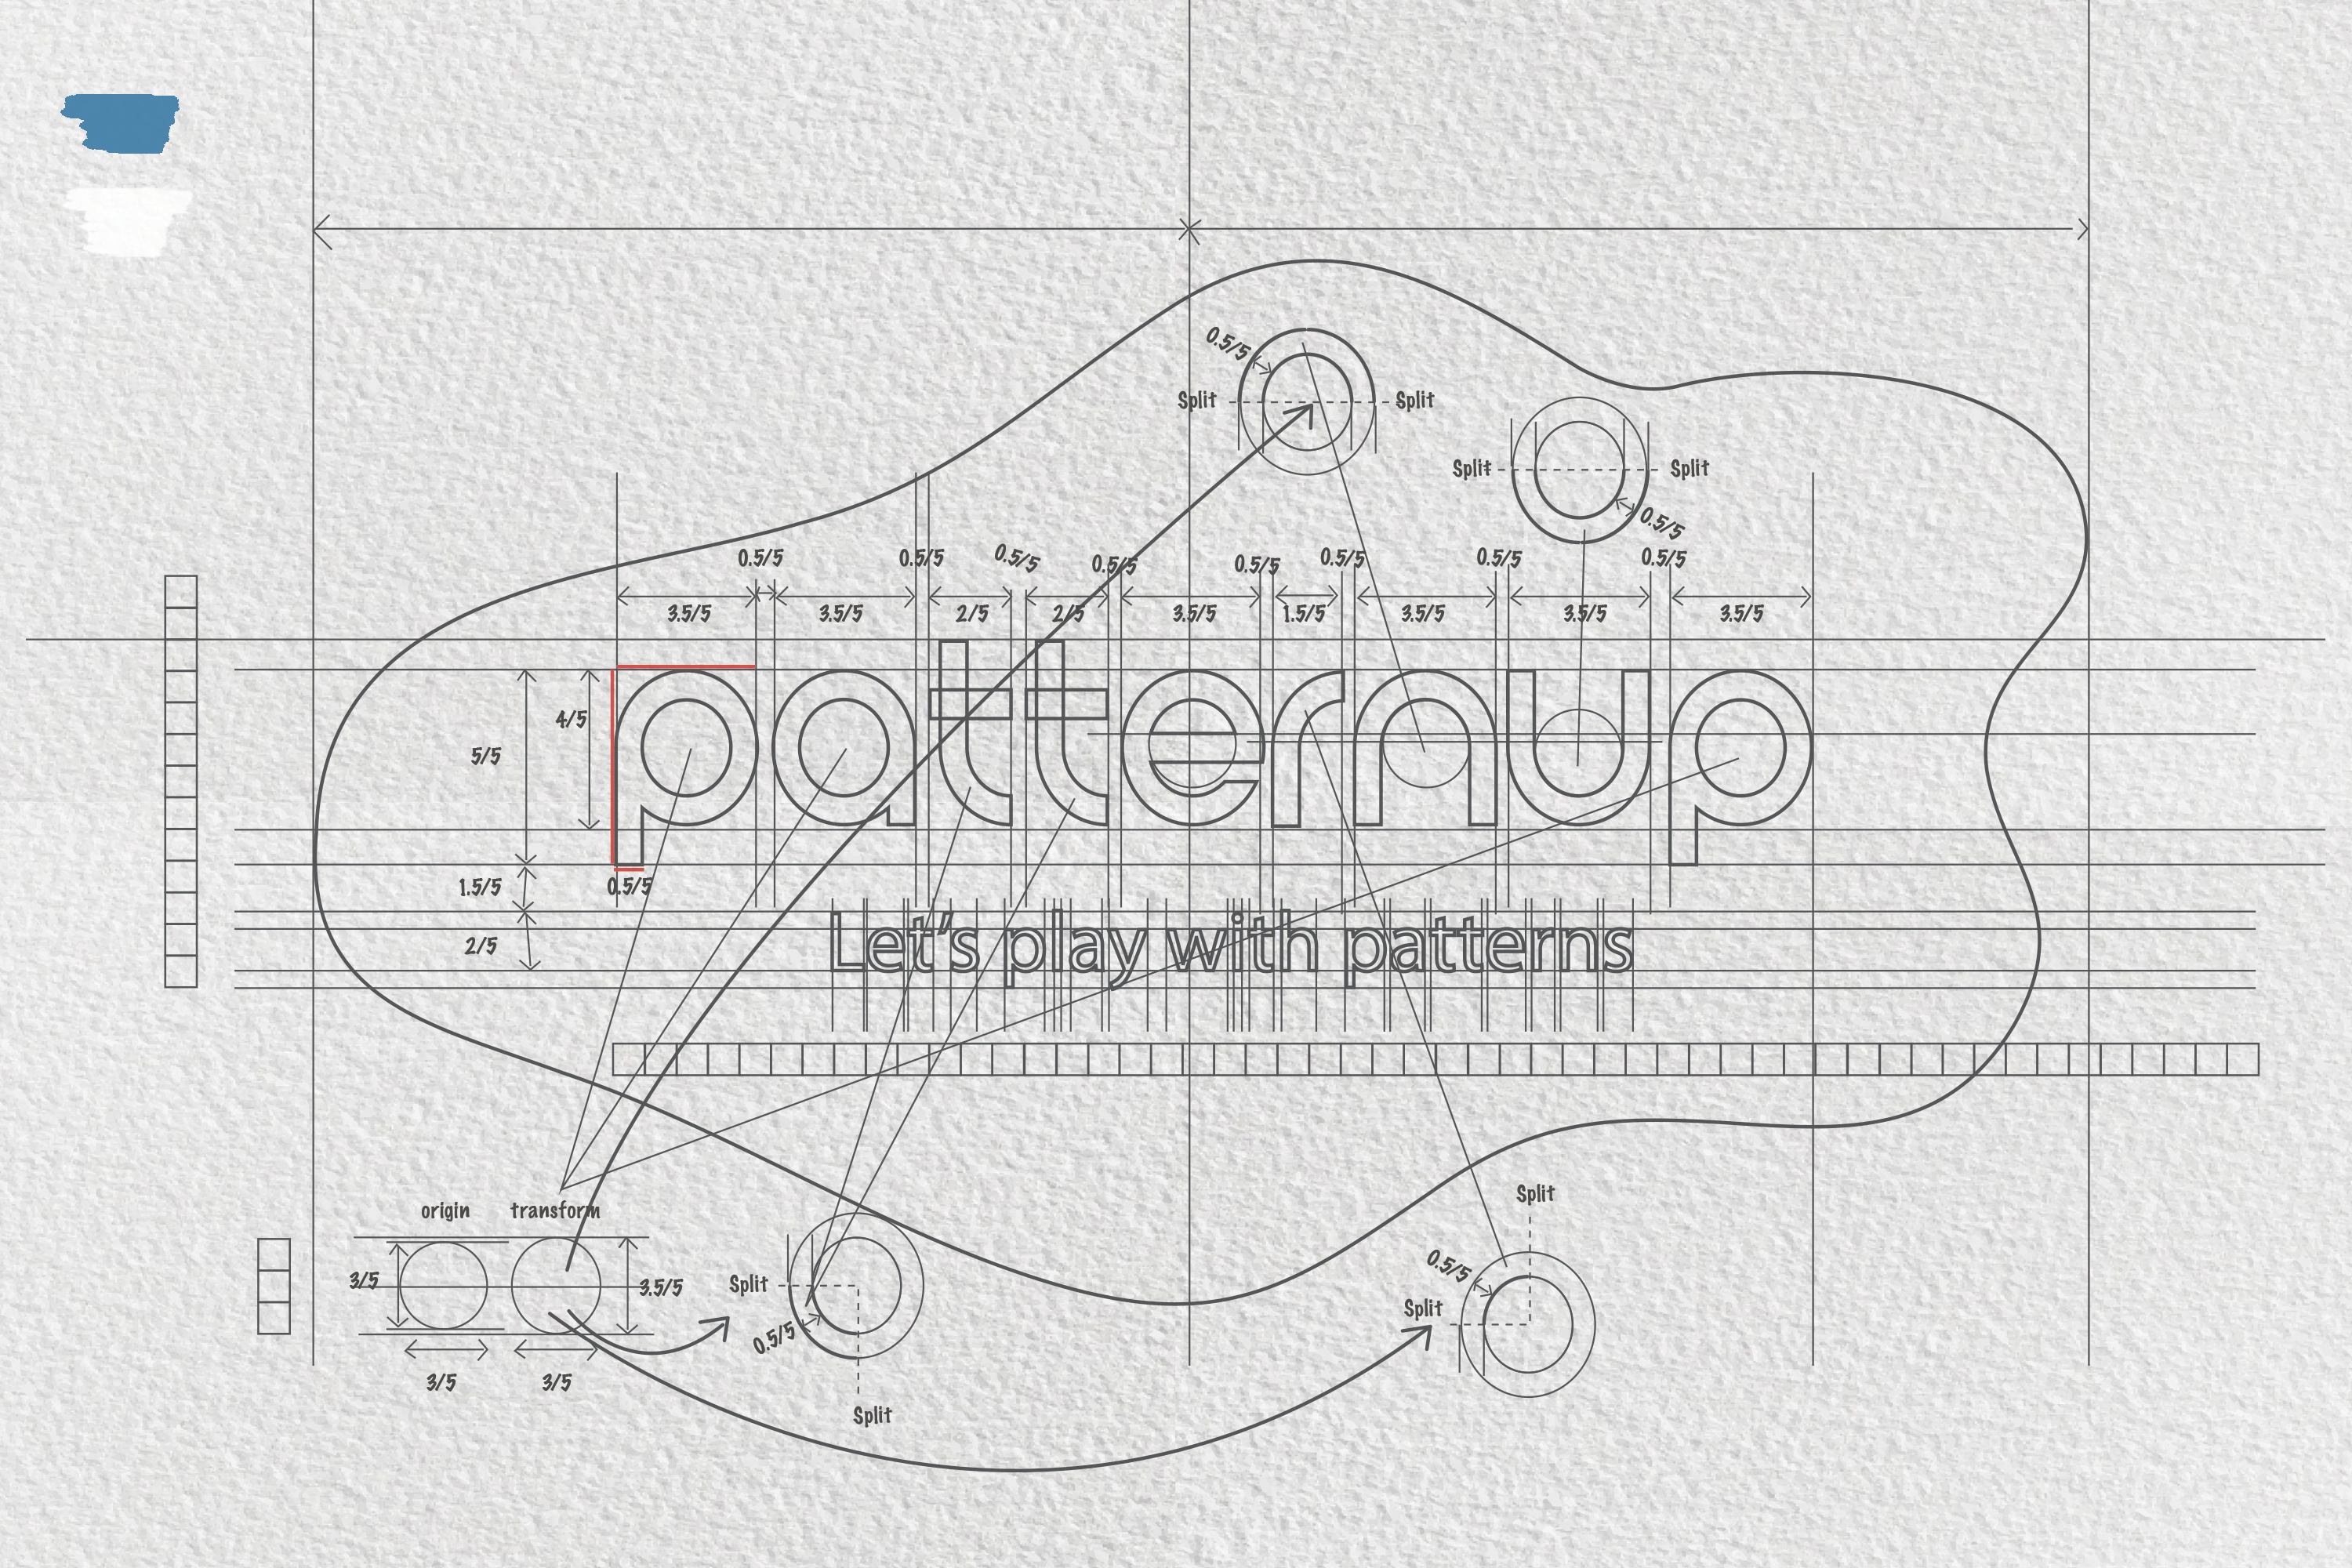 patternup_logo_sketch